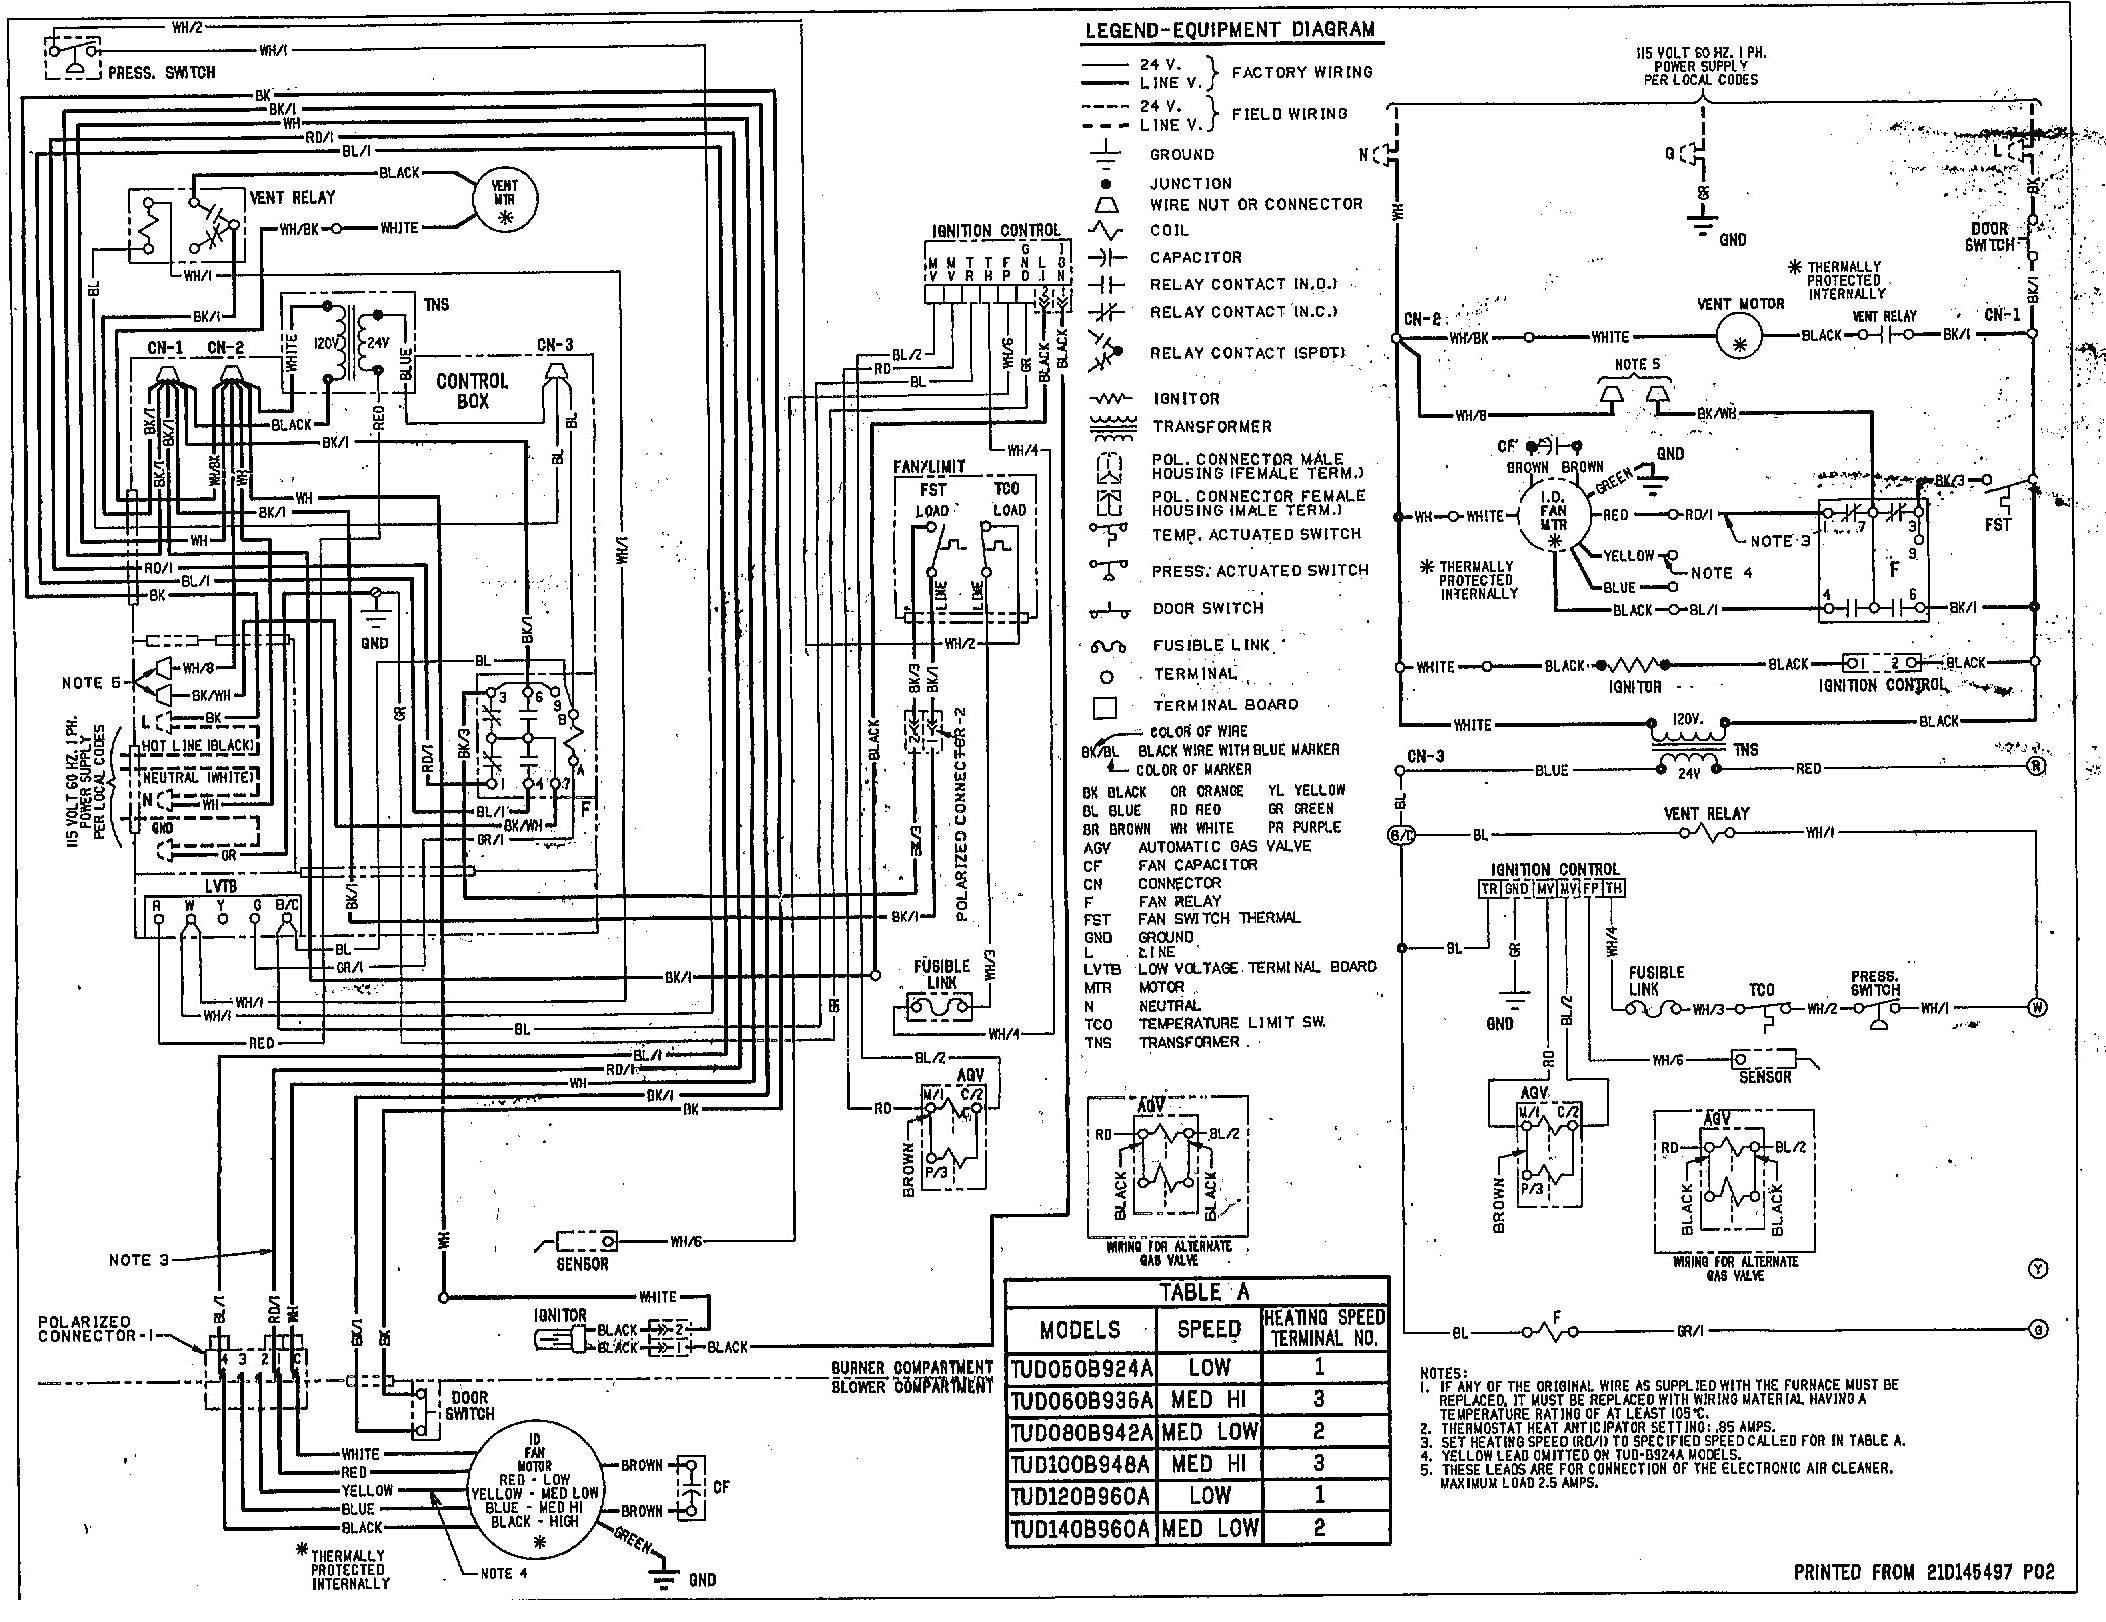 trane xe 1000 heat pump wiring diagram trane xl 1200 heat pump wiring diagrams trane xl 1200 wiring diagram gallery